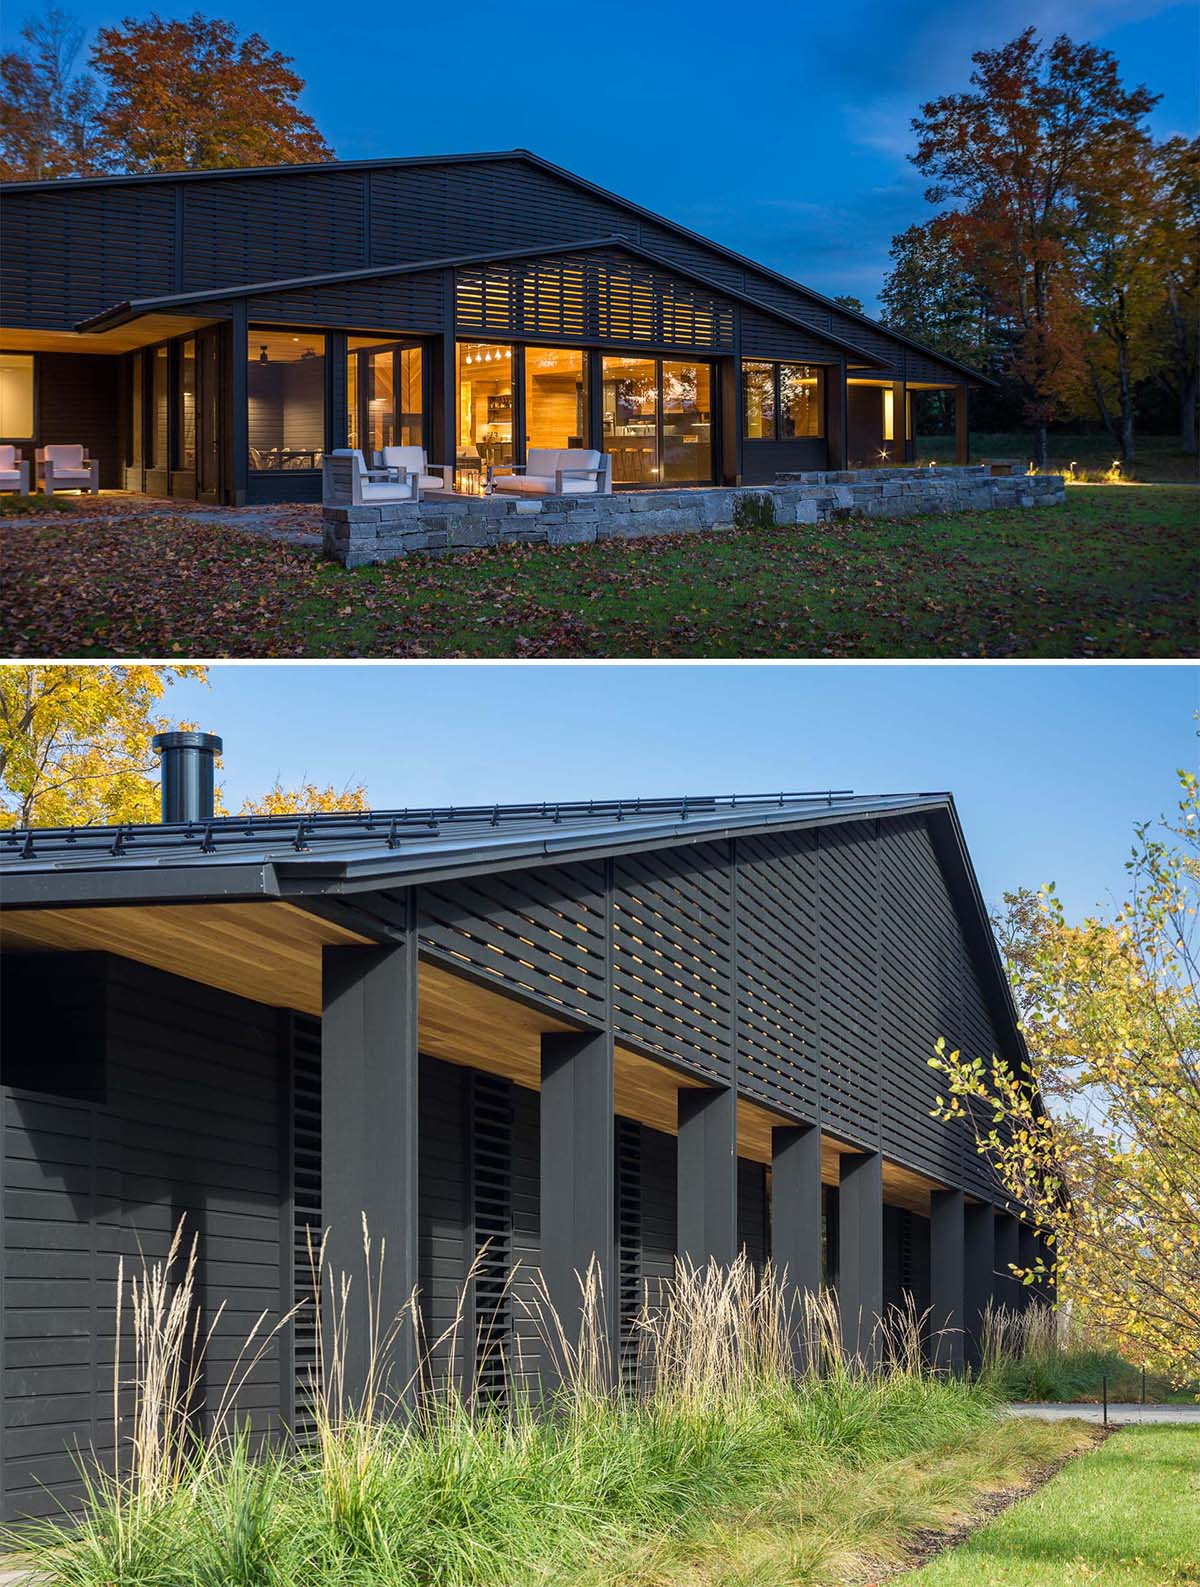 A modern house with black exterior siding and a black metal roof.